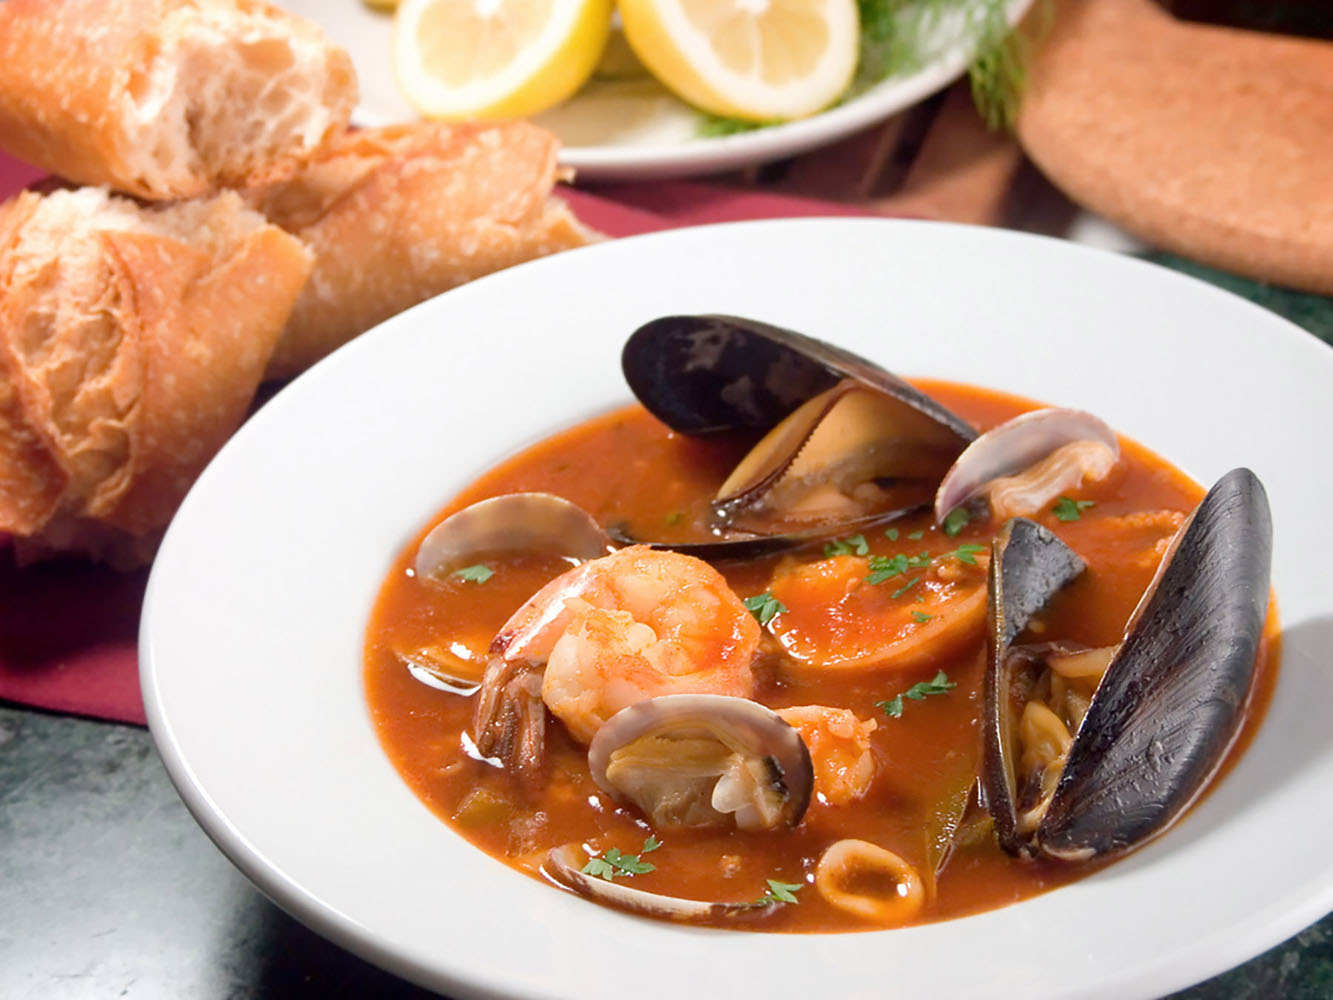 When in Southern France, you must try bouillabaisse—a well-known fish stew hailing from the port city of Marseilles.